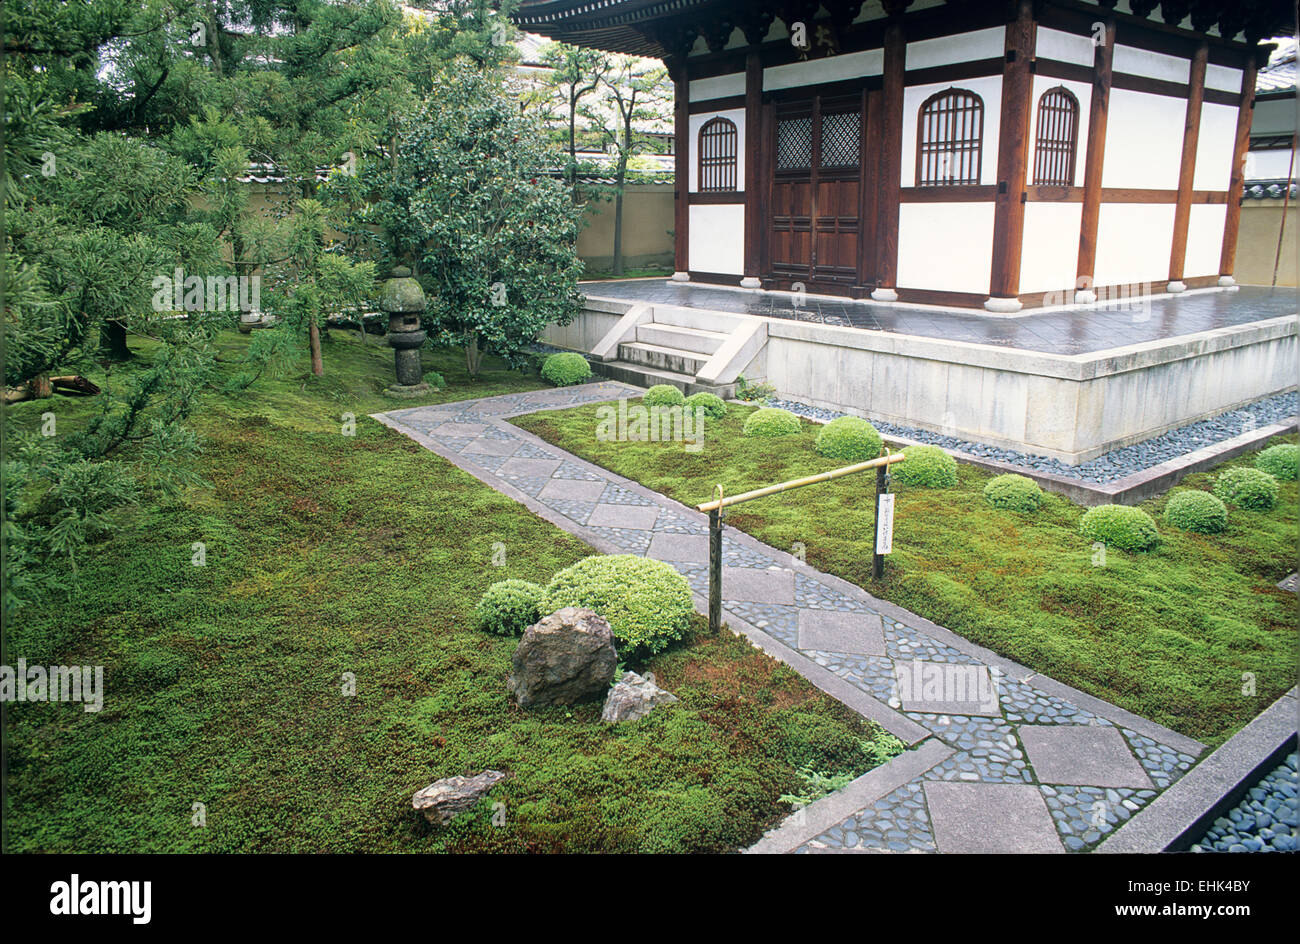 Ryogen-in is a subtemple of Daitokuji and is one of several Zen gardens that were founded in the 15th century. - Stock Image